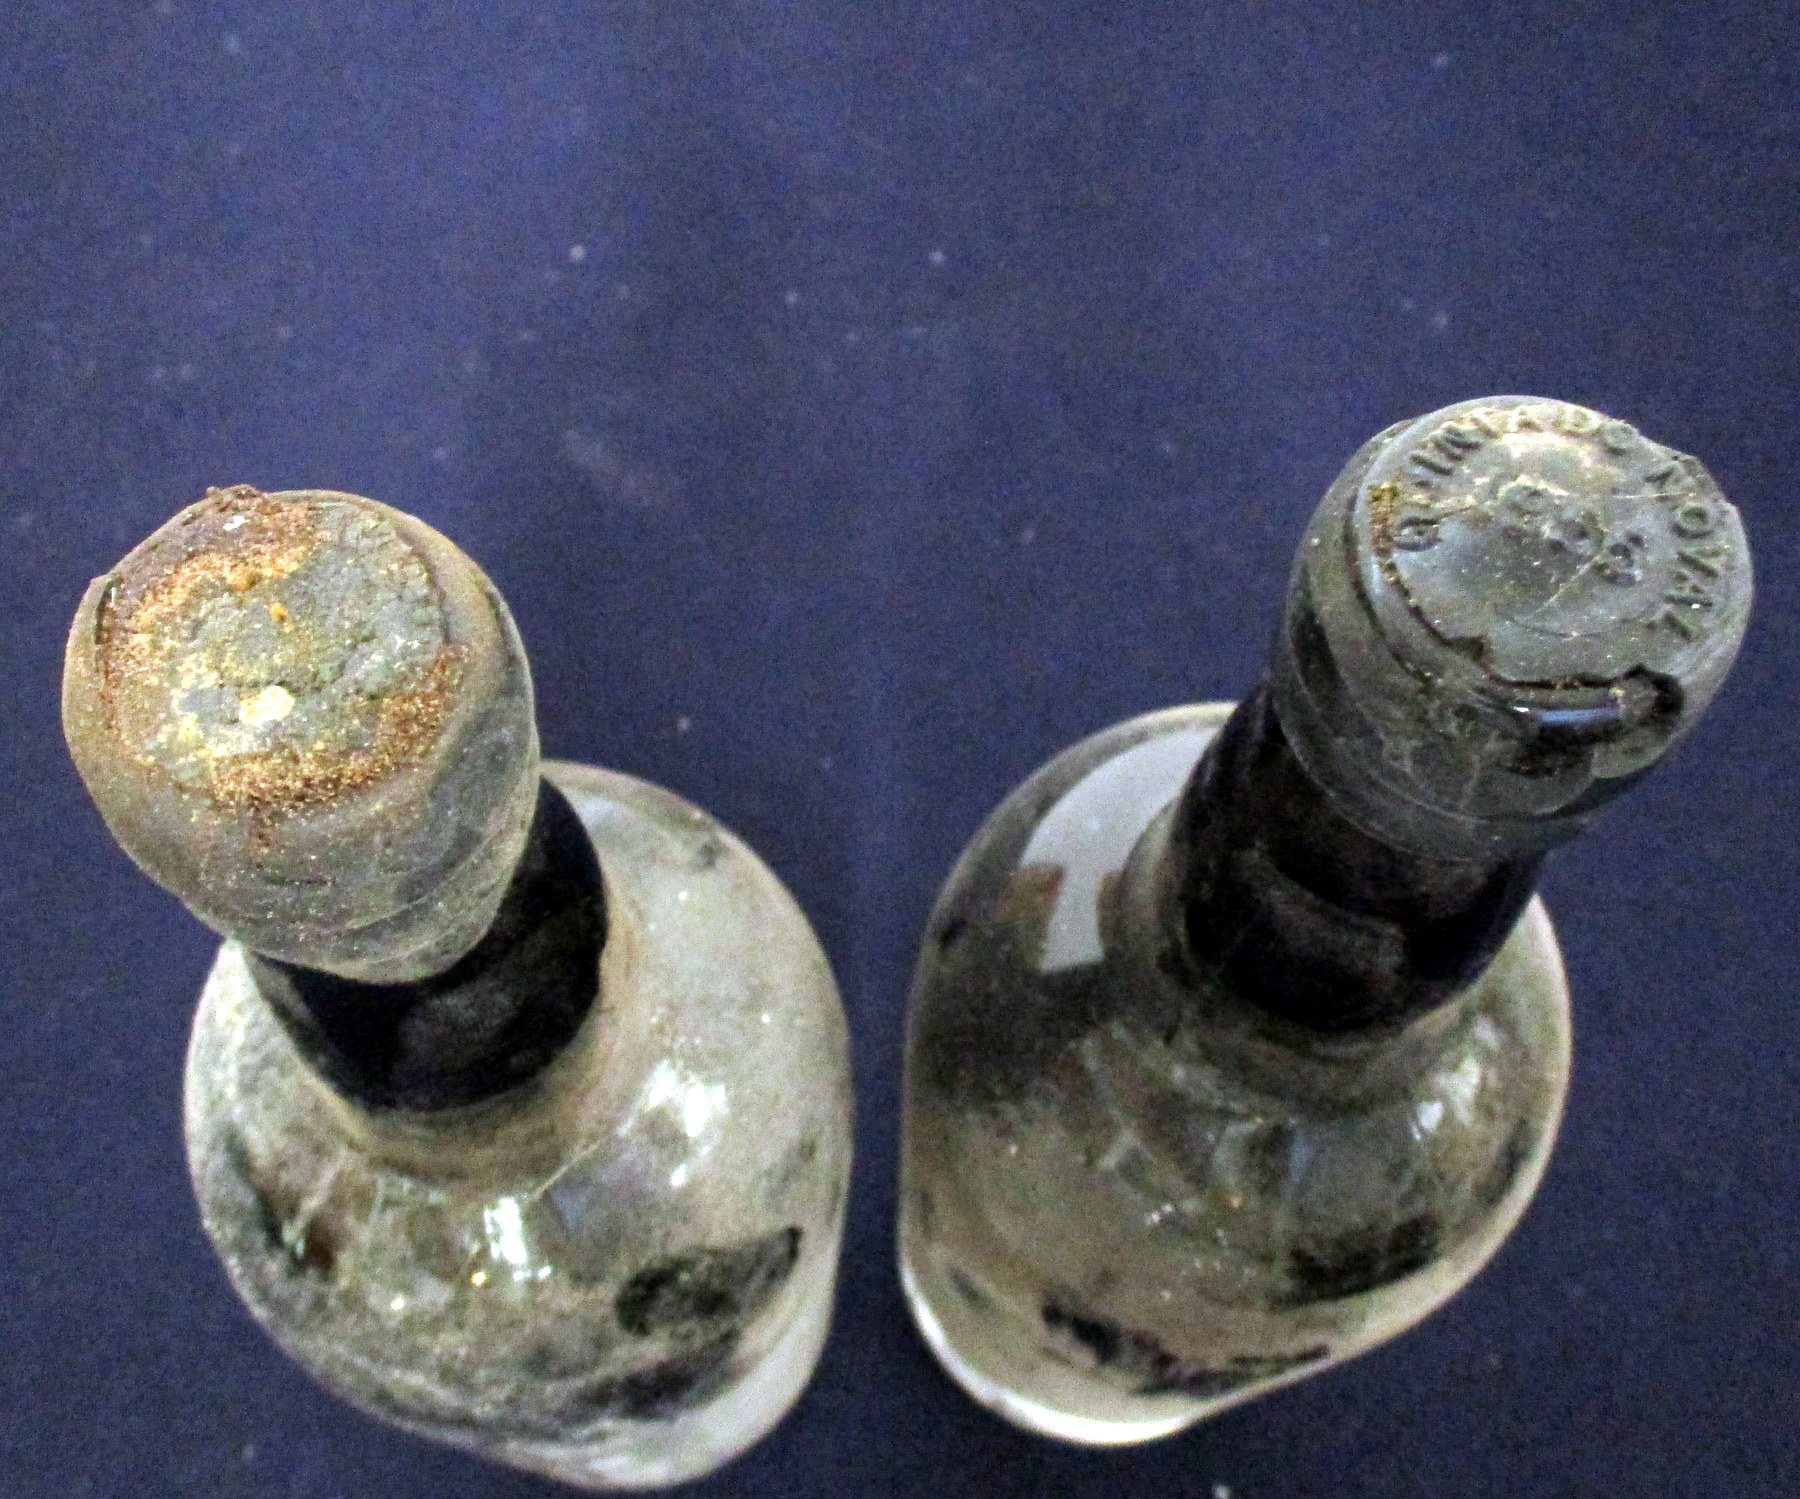 1 bt Quinta do Noval 1955 Vintage Port, i.n, ID from chipped Wax, sl bs 1 bt believed Quinta do - Image 2 of 2